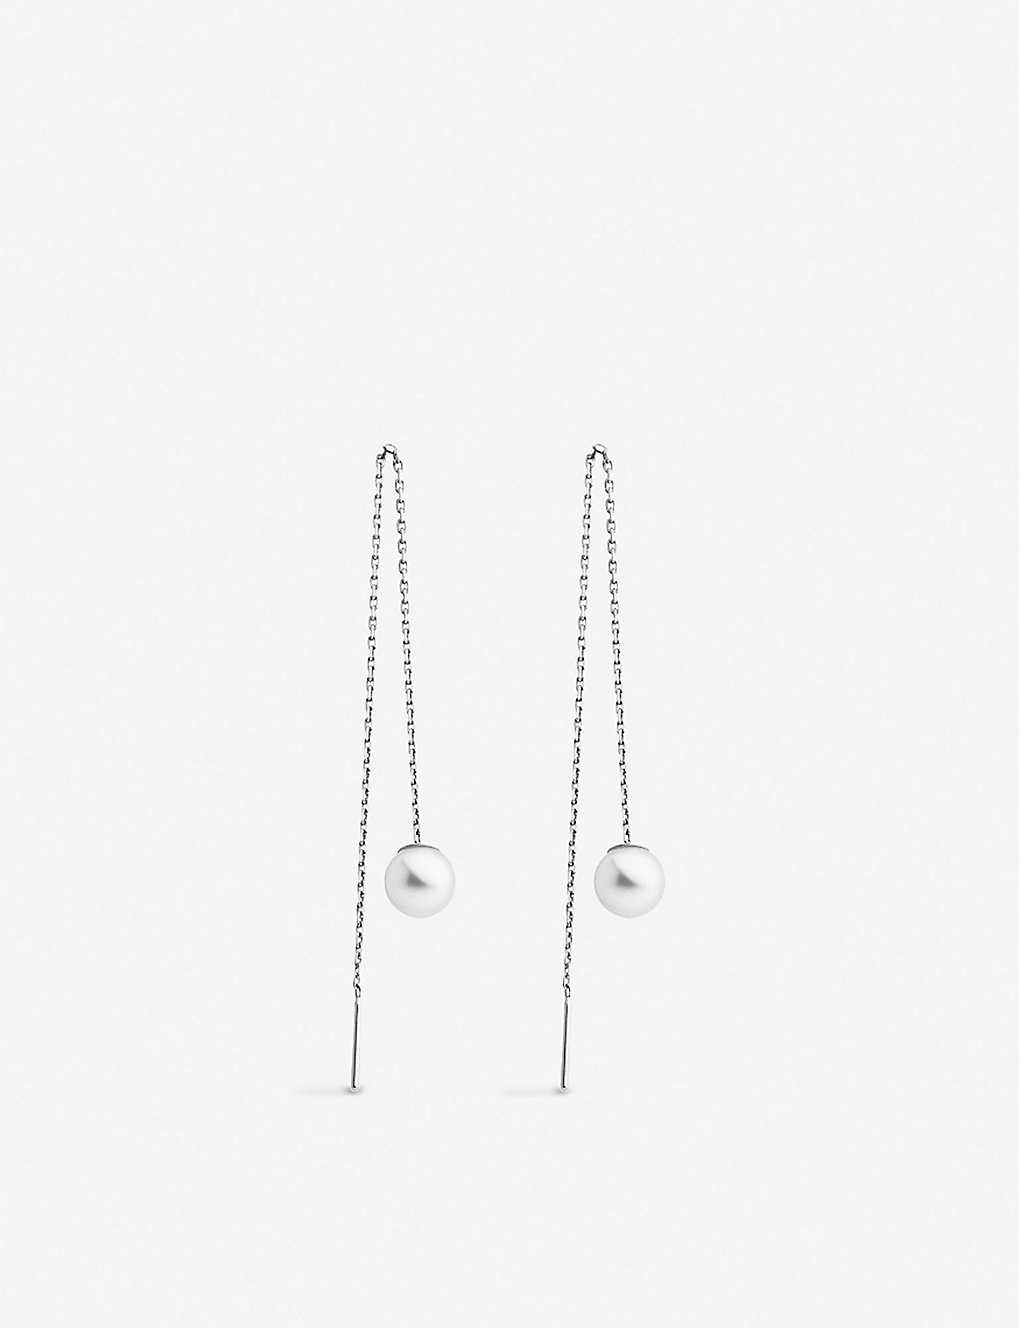 THE ALKEMISTRY: Redline Sensuelle 18ct white-gold and pearl chain earrings